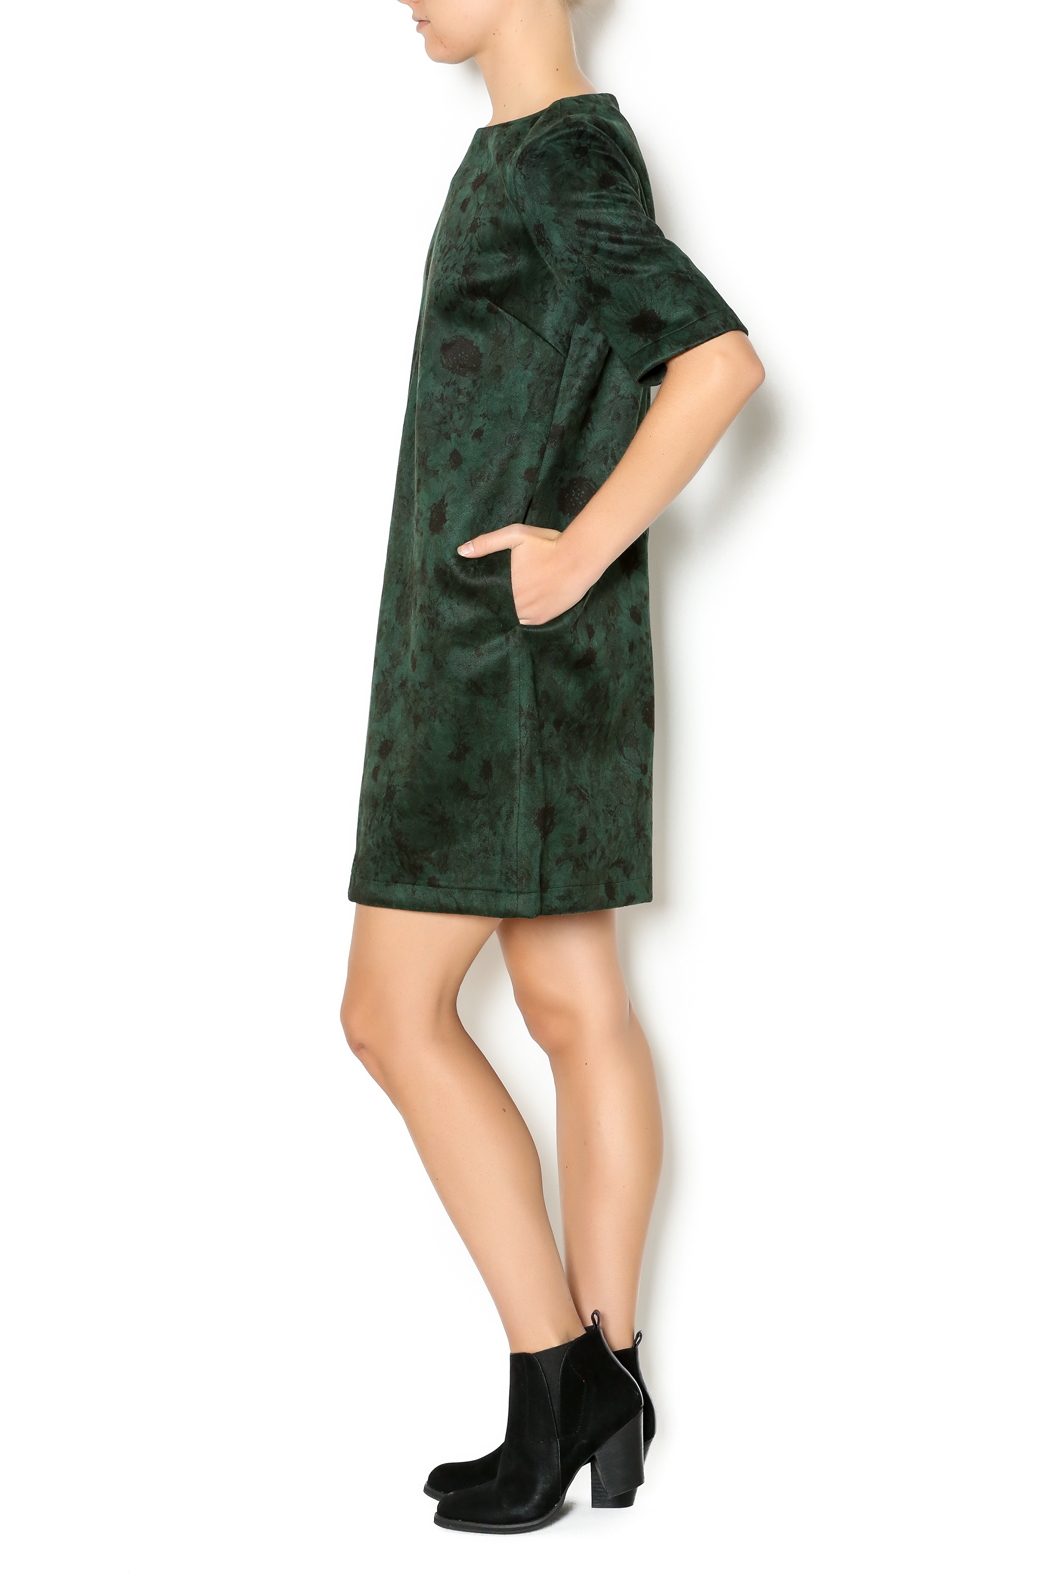 FRNCH Floral Suede Dress - Front Full Image